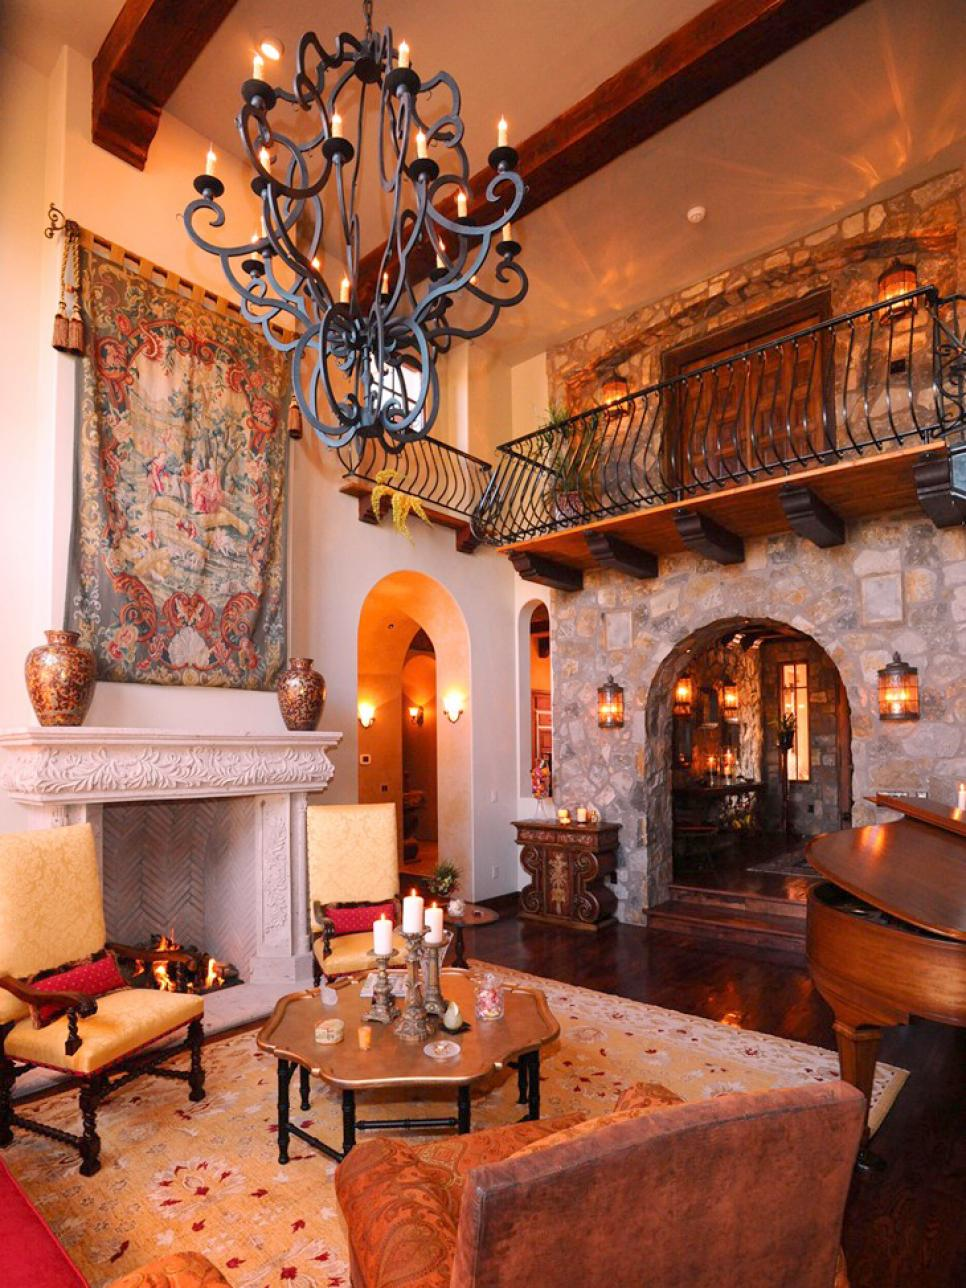 Small Living Rooms Decorating Hgtv: Spanish-Style Decorating Ideas